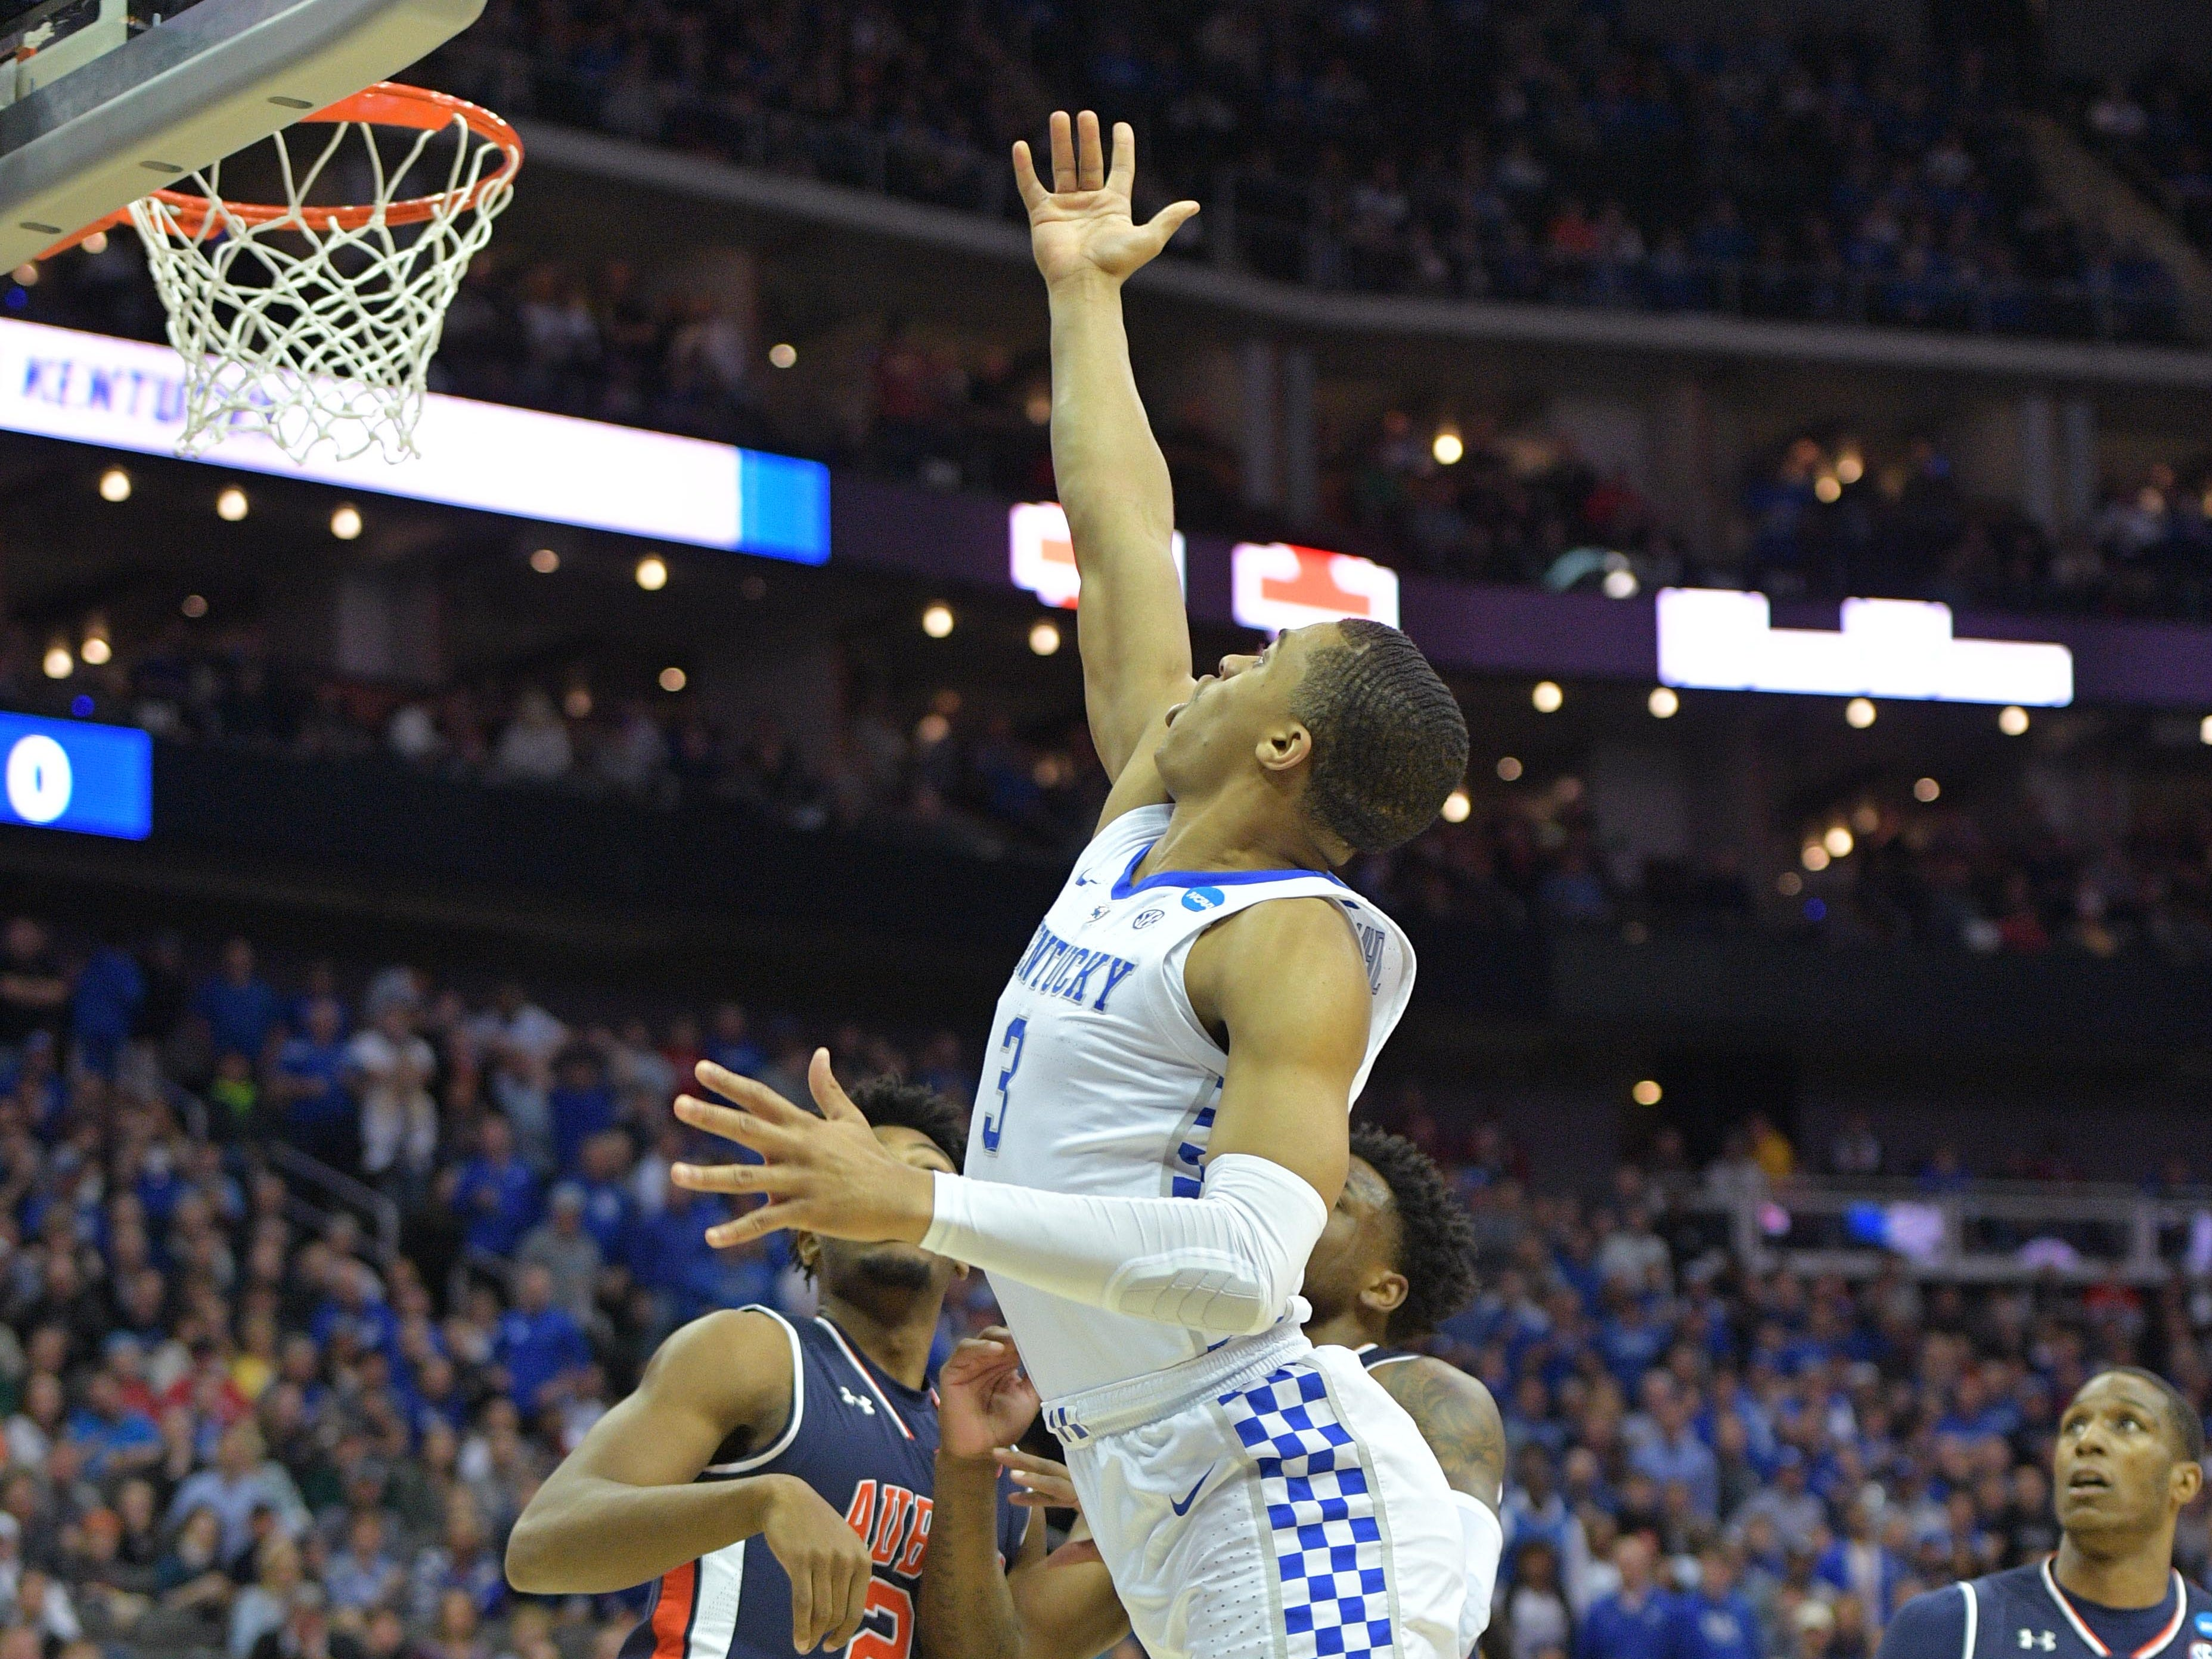 Mar 31, 2019; Kansas City, MO, United States; Kentucky Wildcats guard Keldon Johnson (3) shoots against the Auburn Tigers during the first half in the championship game of the midwest regional of the 2019 NCAA Tournament at Sprint Center. Mandatory Credit: Denny Medley-USA TODAY Sports